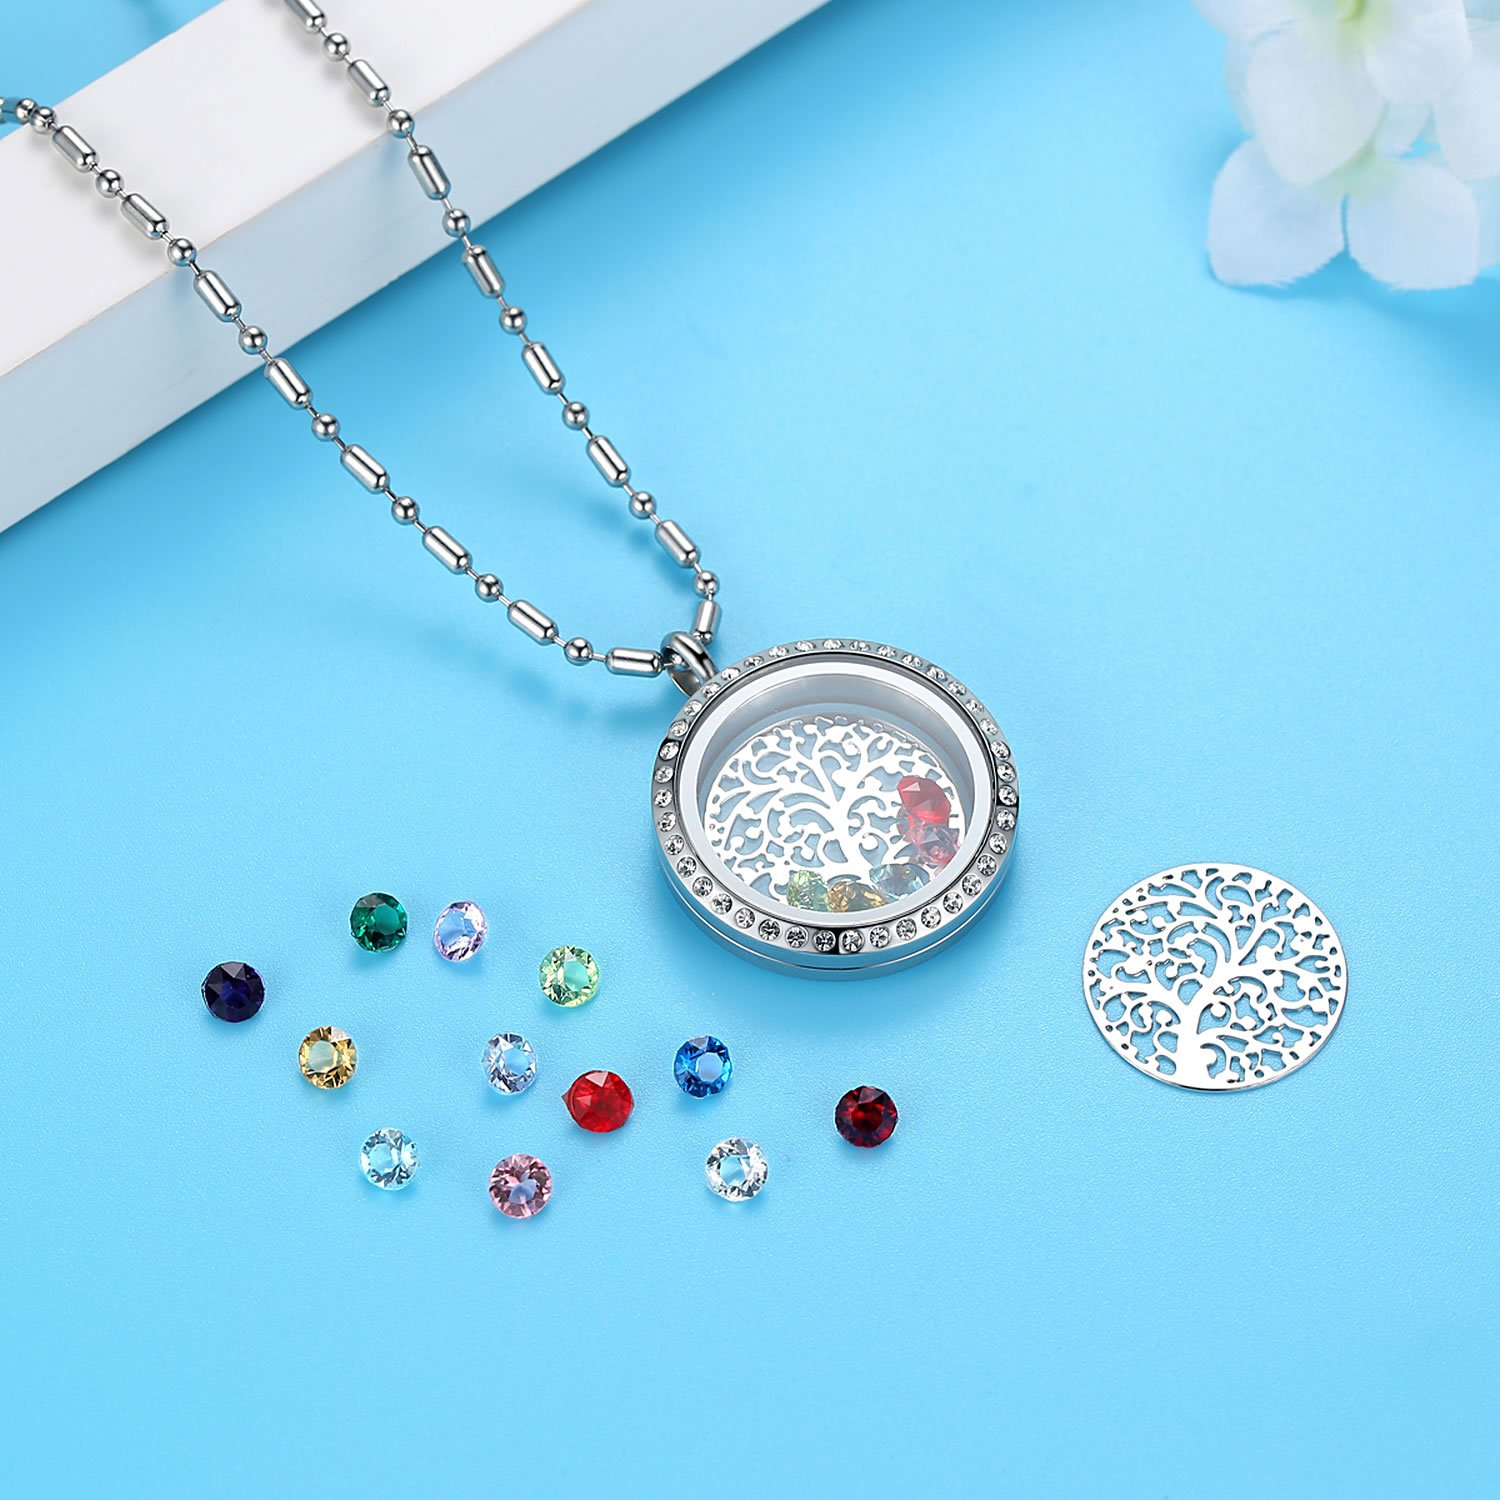 Family Tree of Life Birthstone Necklace Jewelry - Gifts for Mom Floating Charm Living Memory Lockets Pendant, Mother's day gifts, Birthday Gifts, Christmas day gifts, Anniversary Thanksgiving gifts by Feilaiger (Image #4)